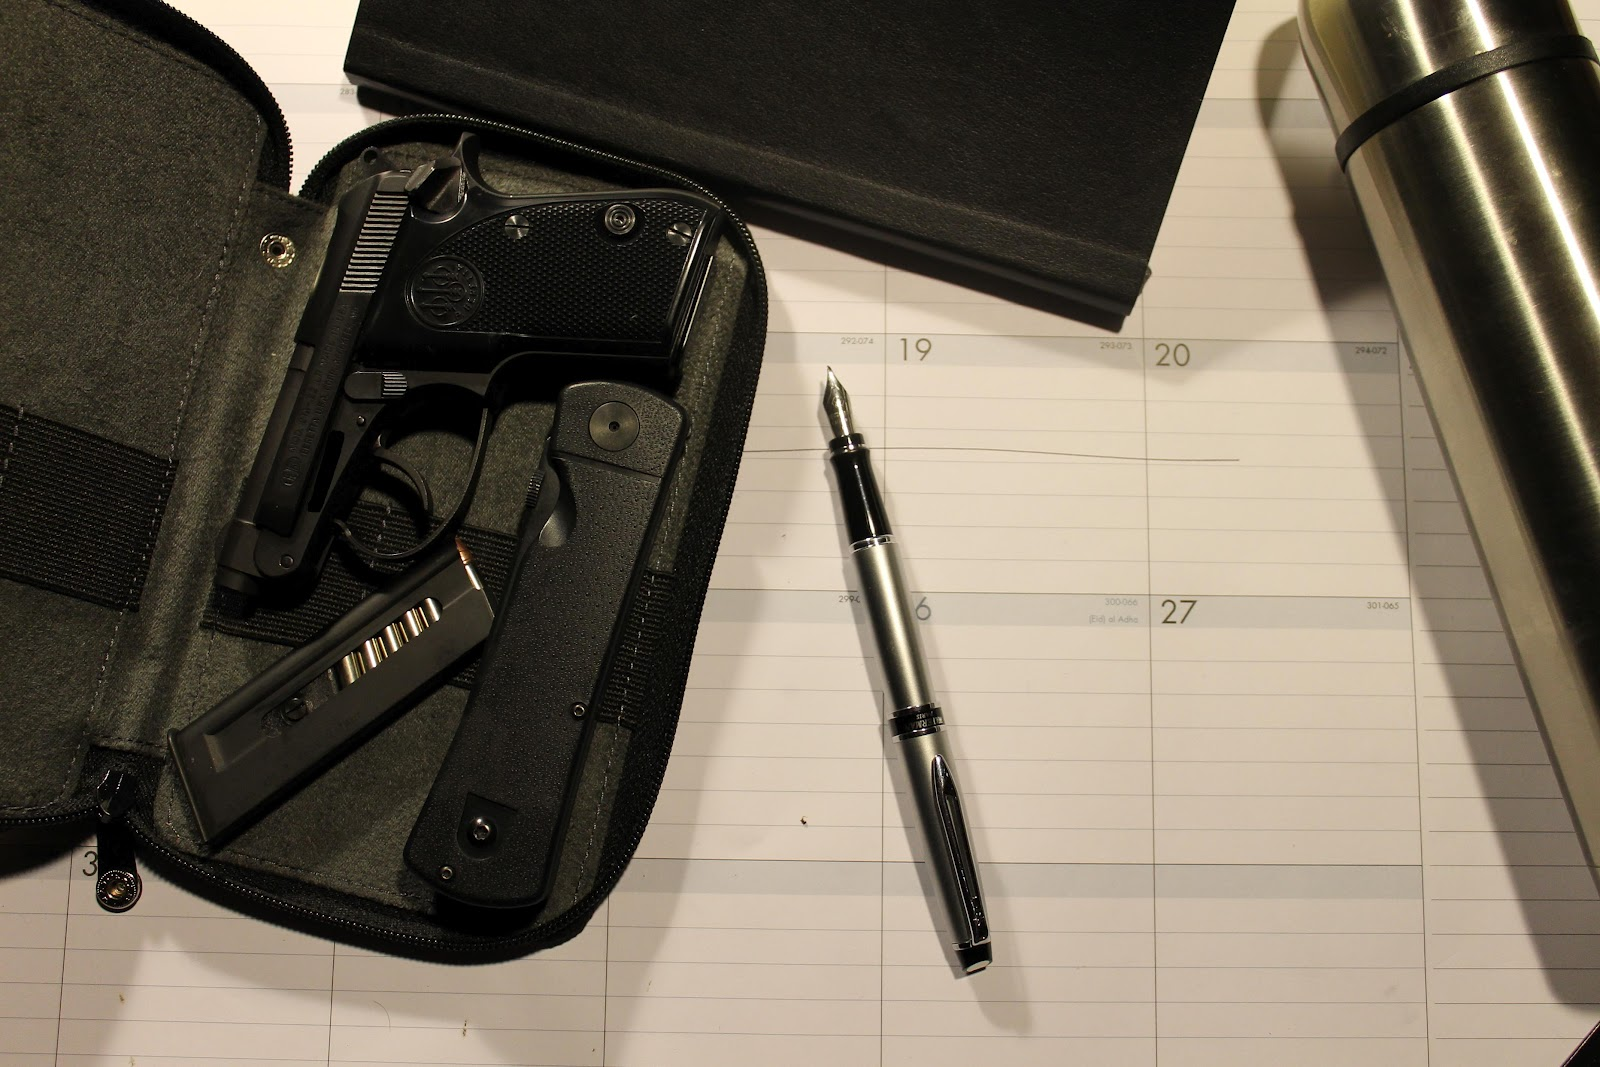 StraightForward in a Crooked World: The  22 LR Pistol and You